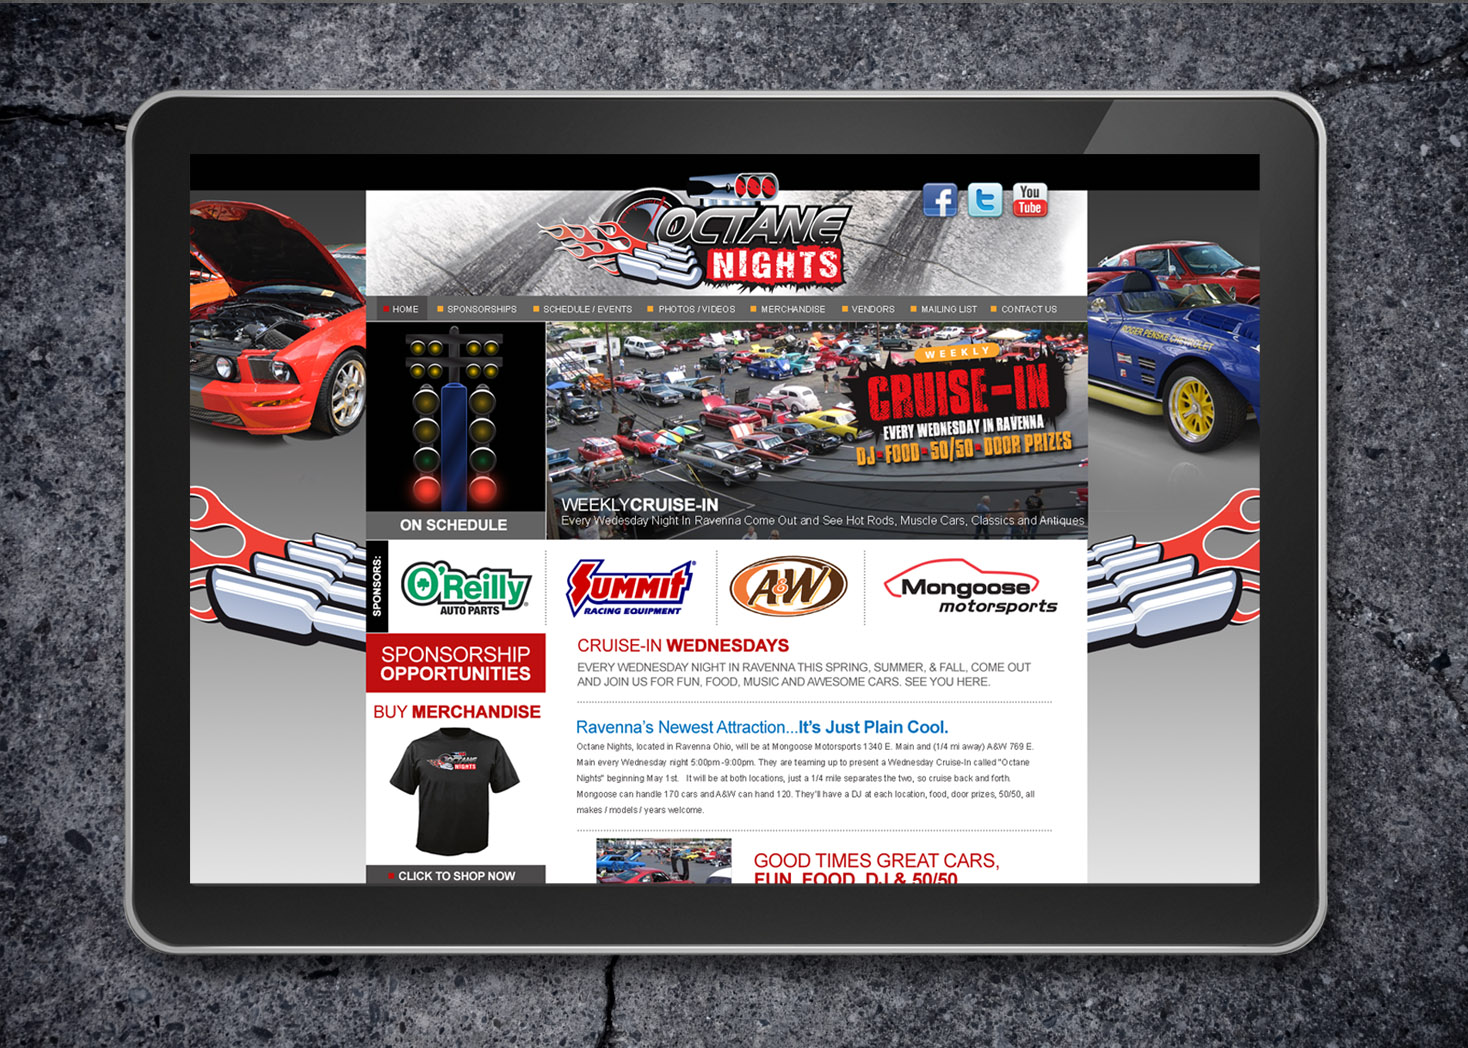 Octane Nights Responsive Website Design and Development - Lehman Design